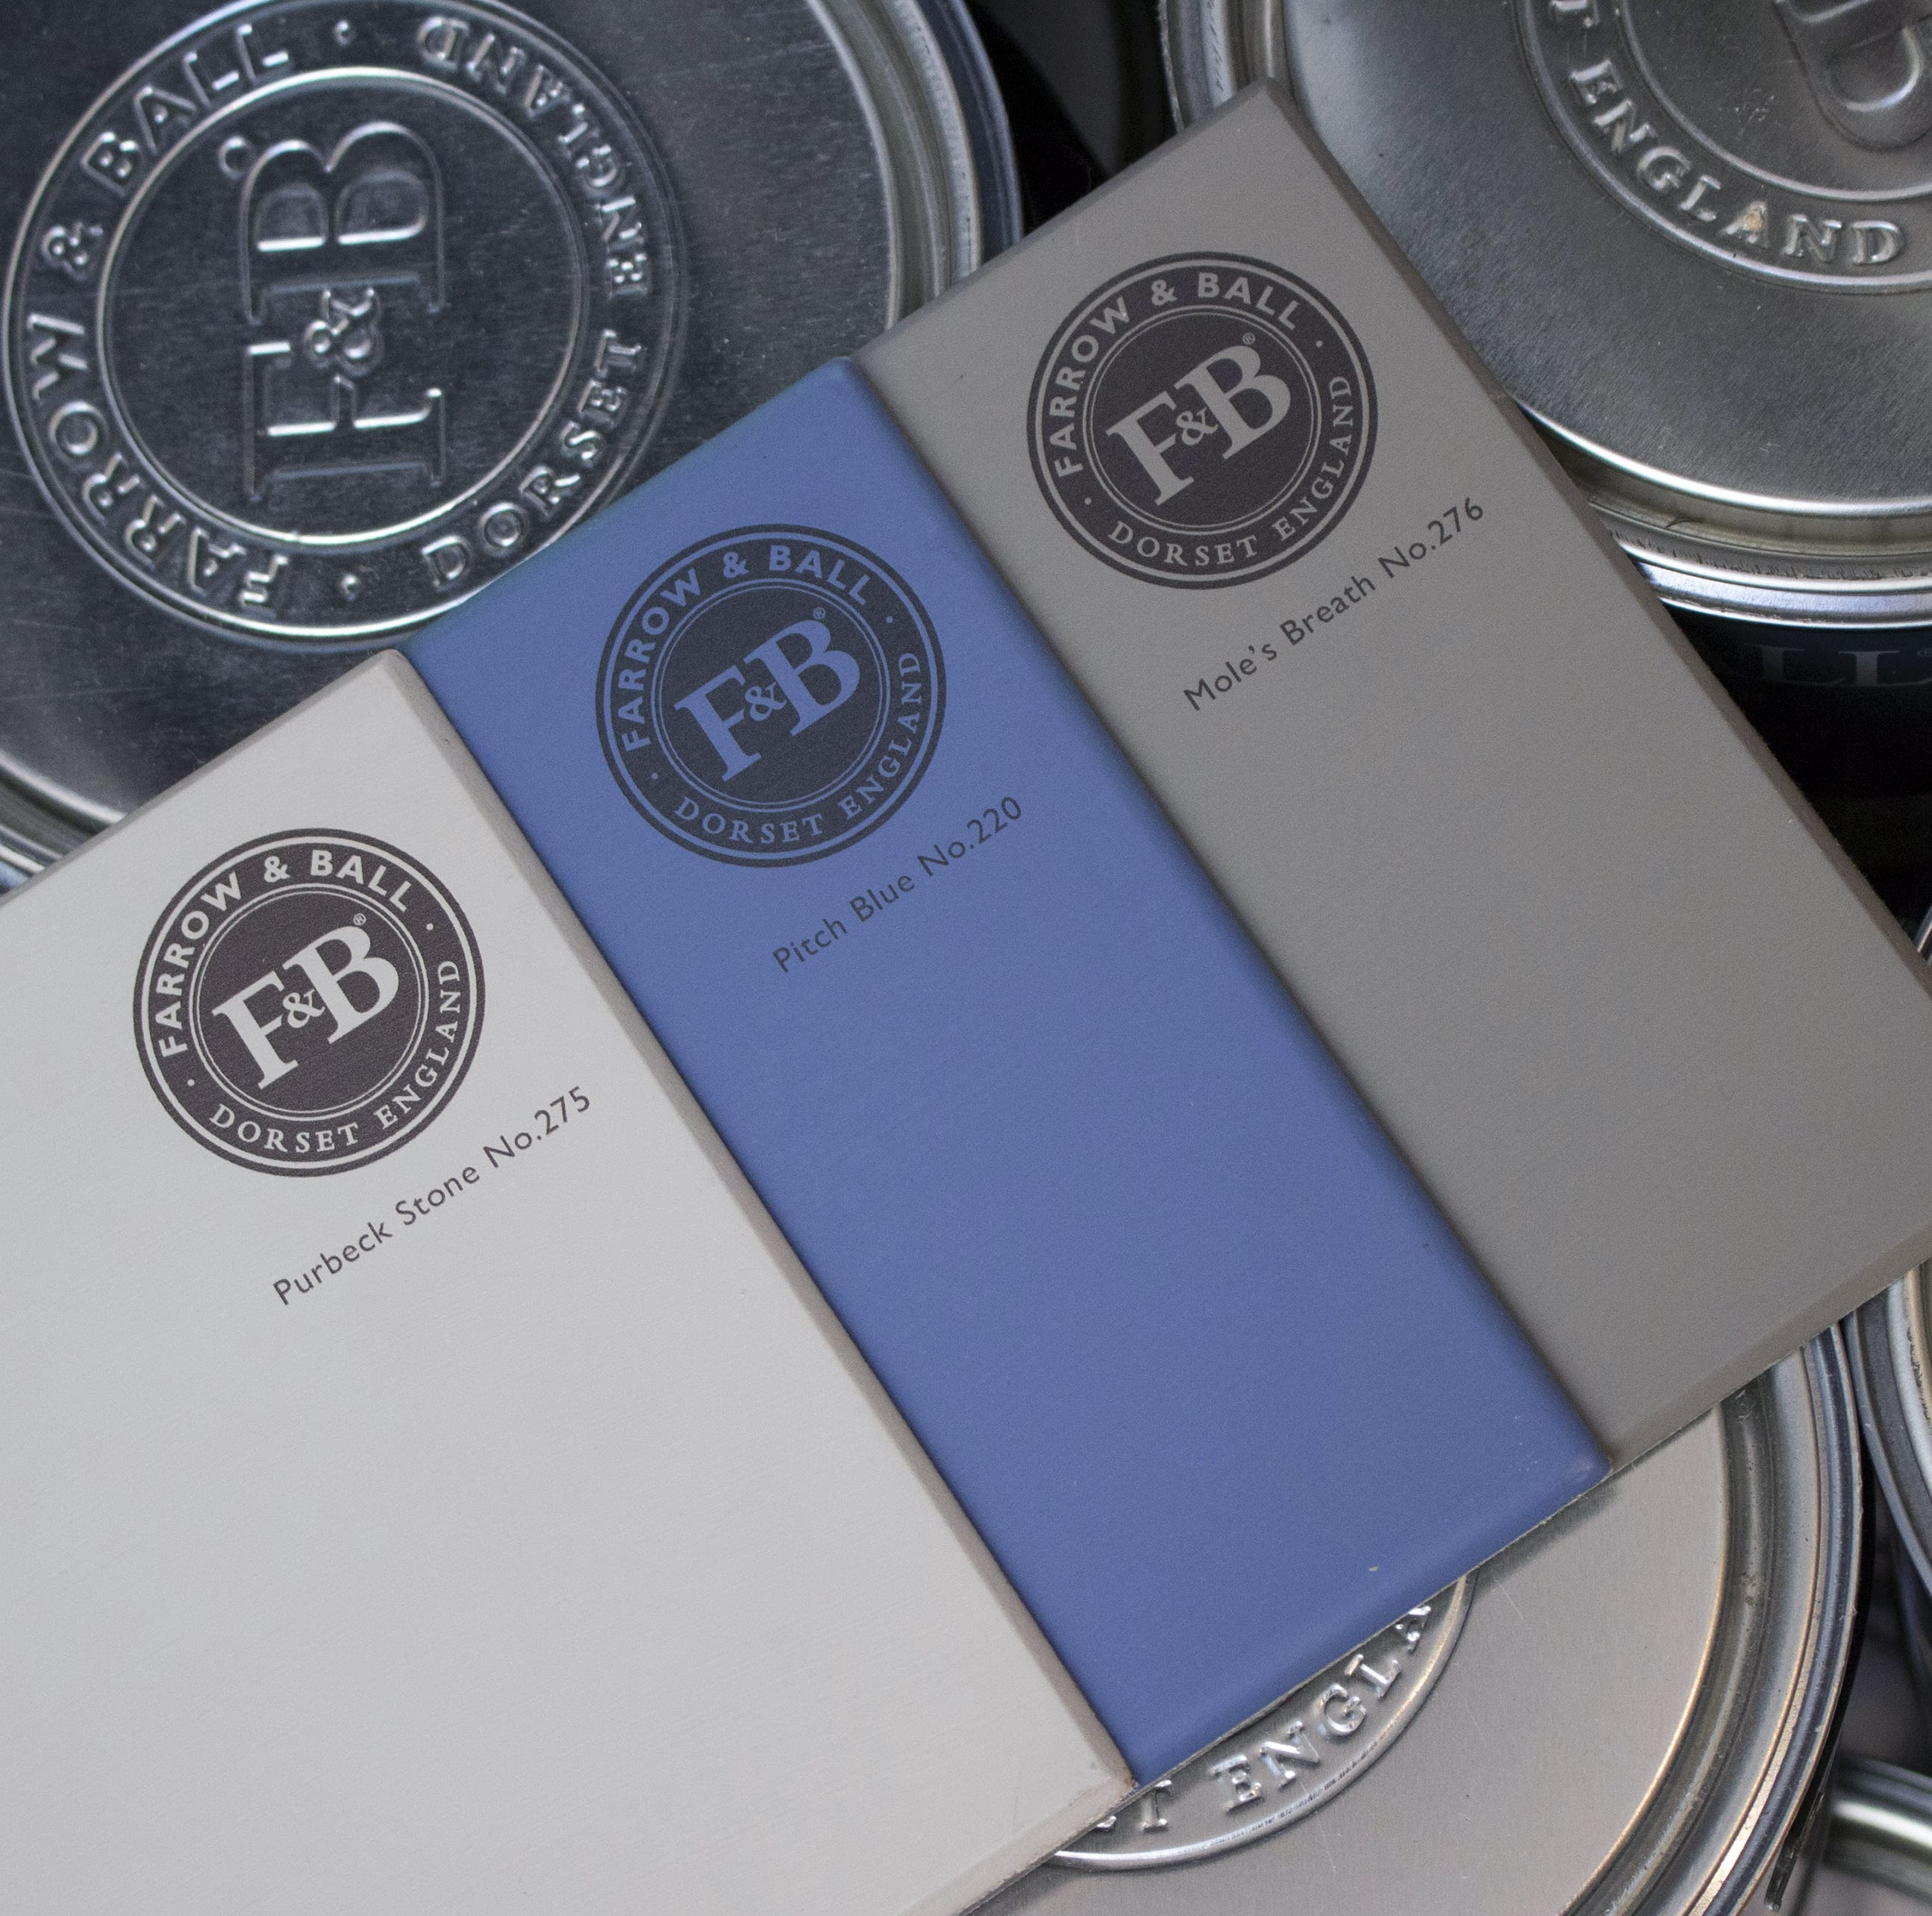 farrow&ball, farrow and ball, paint, decorating, paint brush, pitch blue